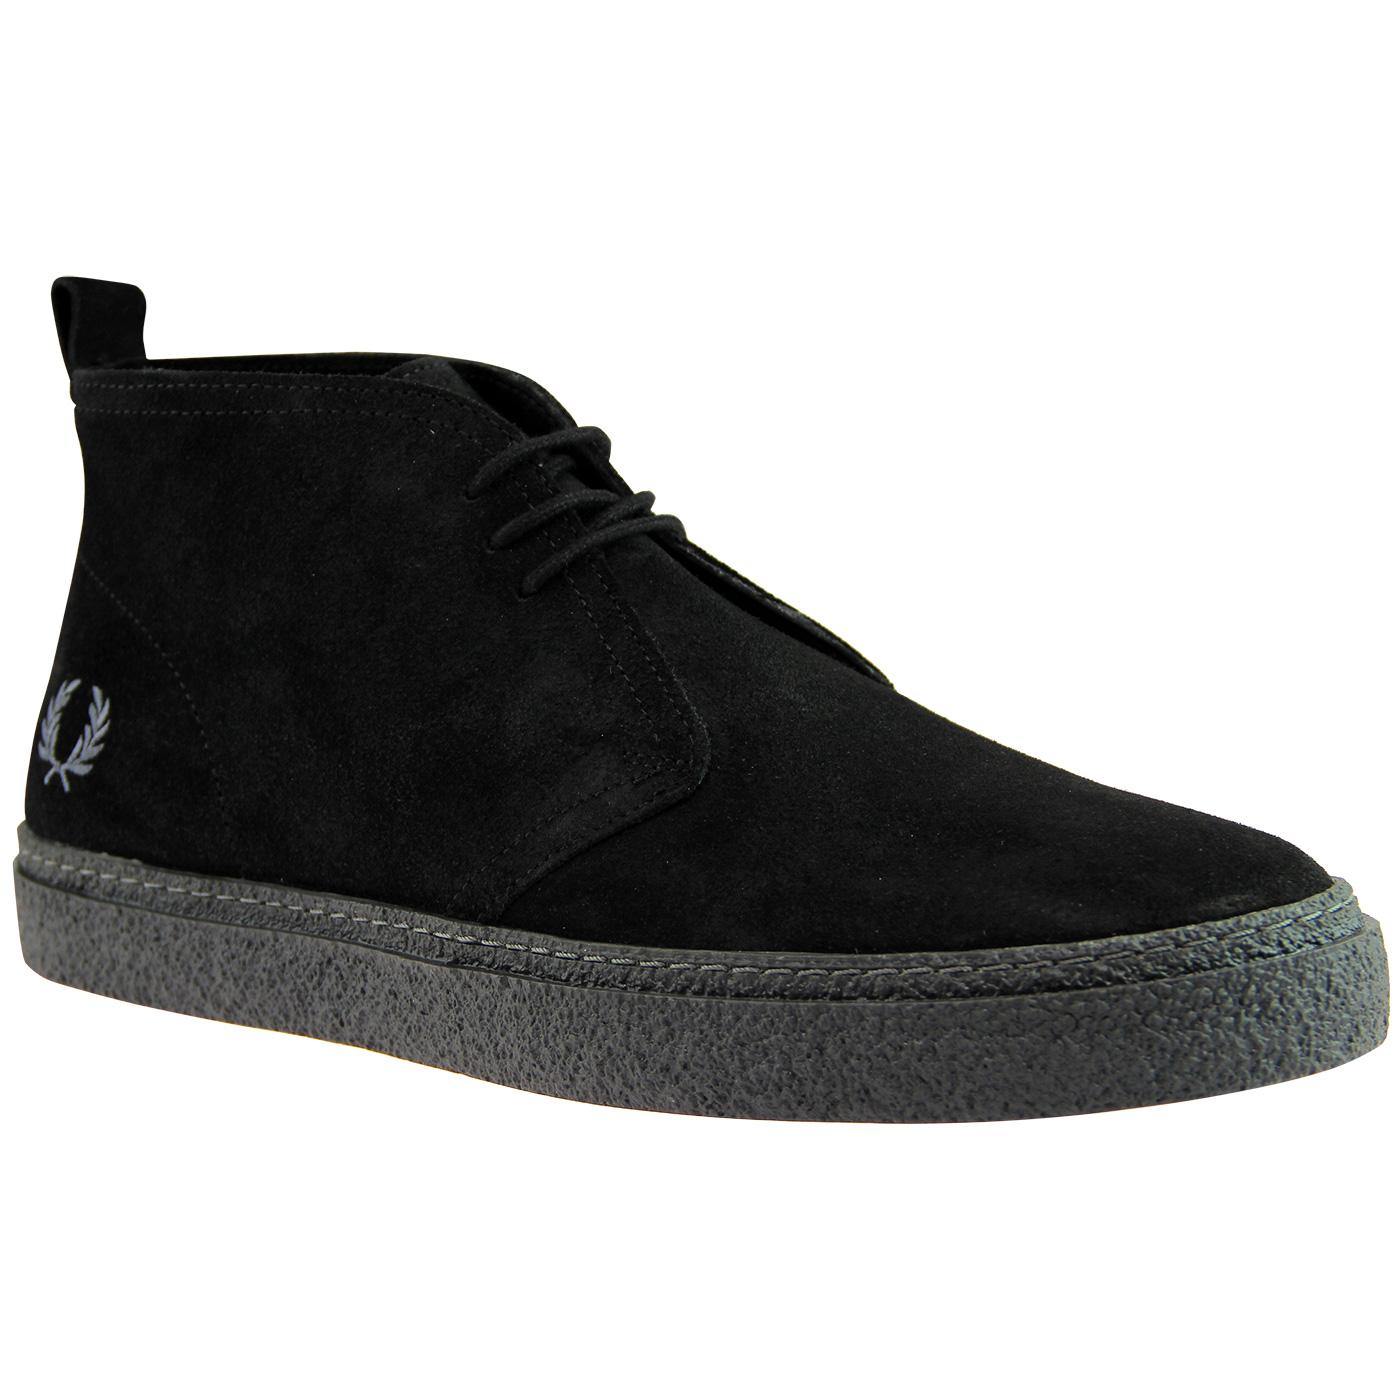 Hawley FRED PERRY Retro Mod Desert Boots - Black